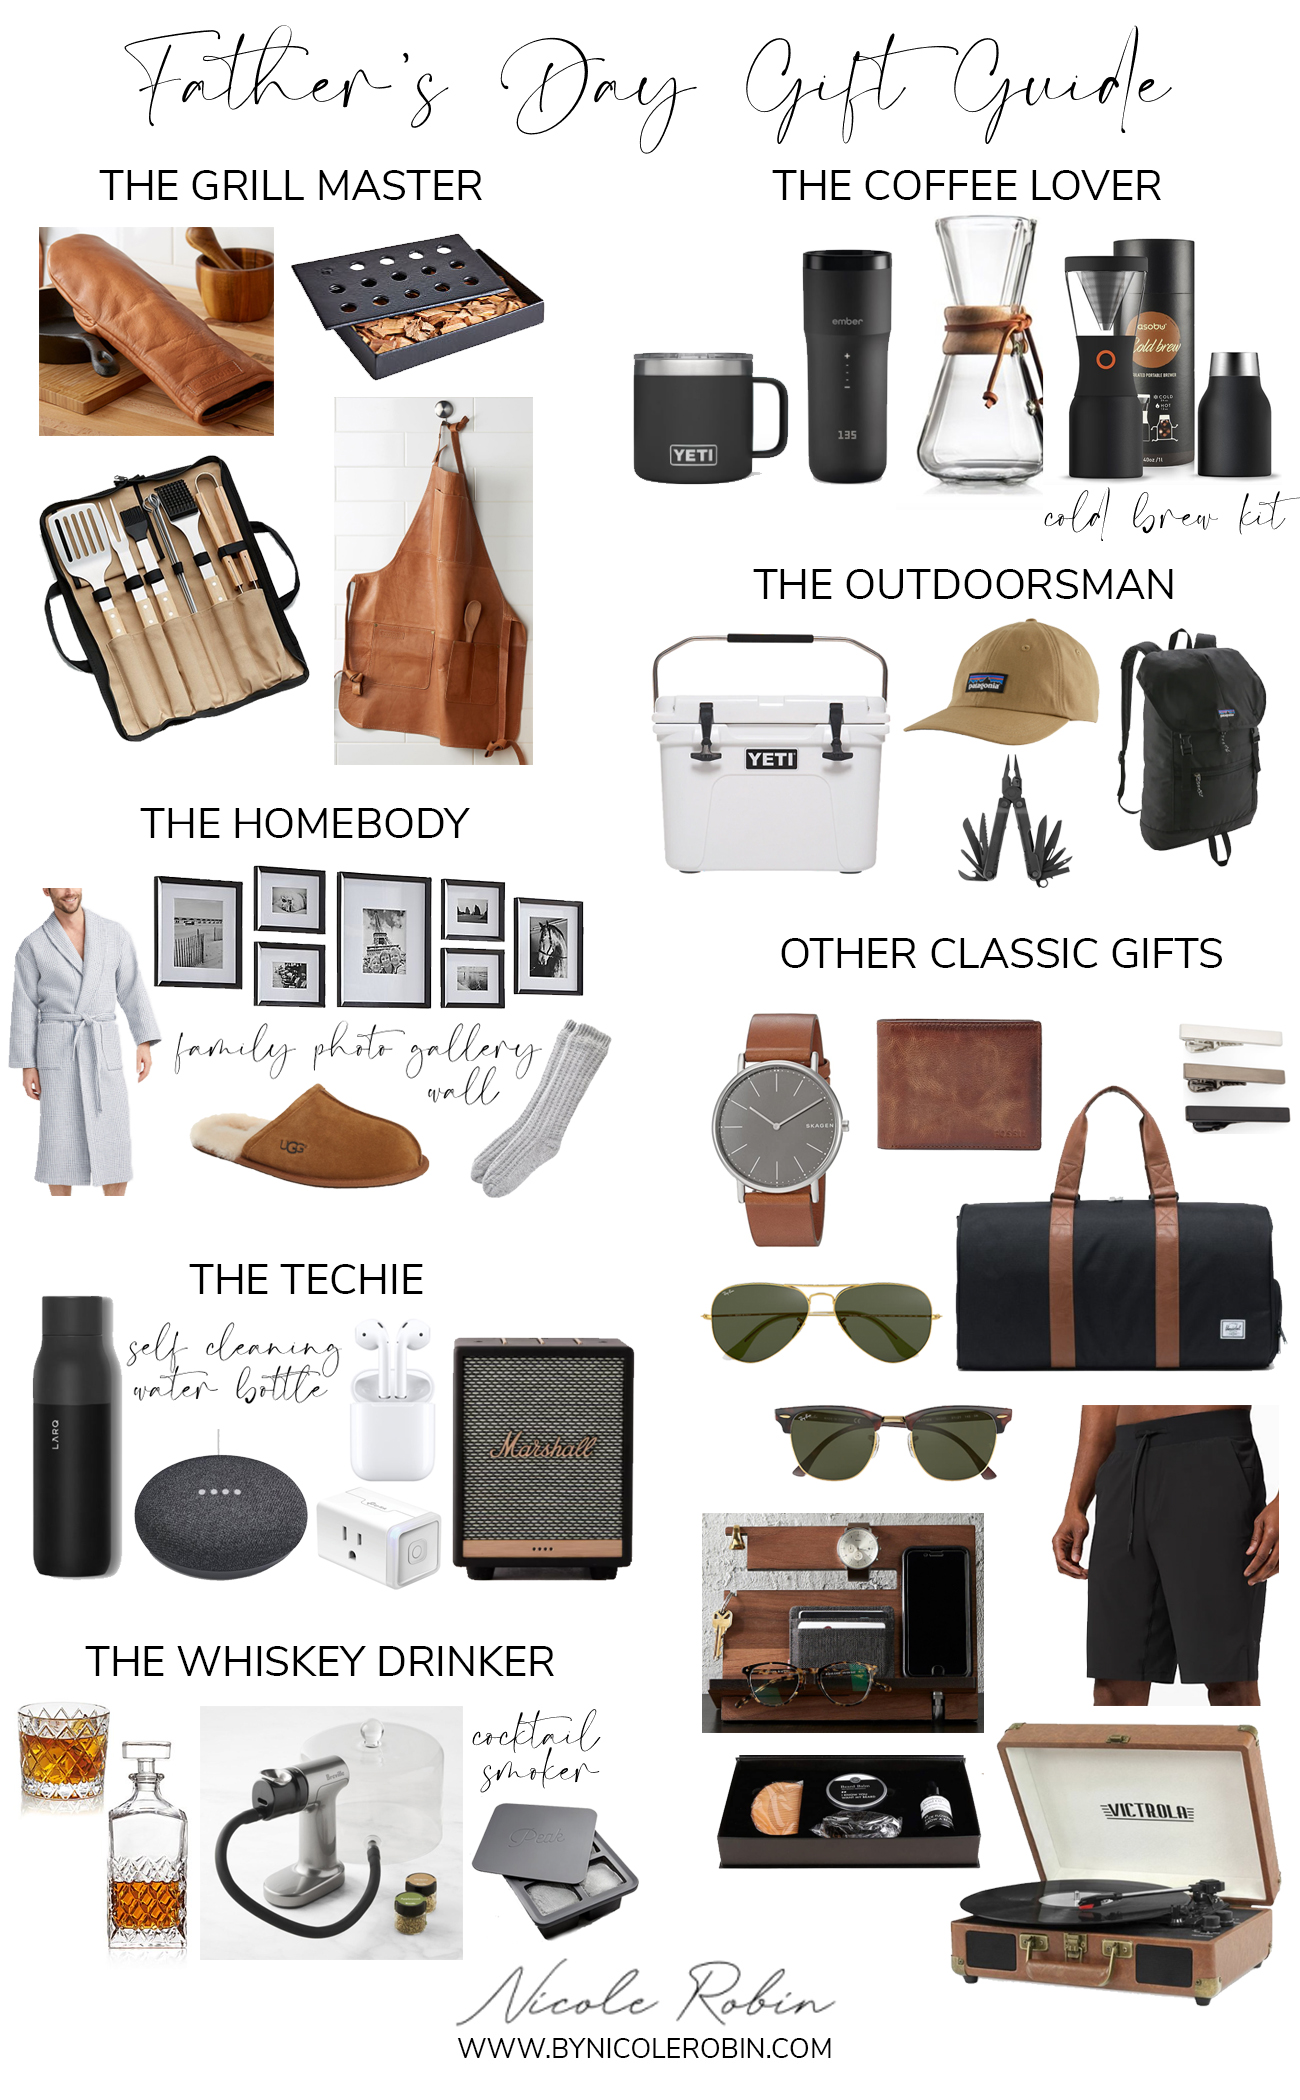 Fathers Day Gift Guide. What To Get for Fathers Day 2020. Gifts for The Dad who has everything. Fathers Day Gift Guide for Every Type of Dad. Gifts for the grill master, the coffee lover, the homebody, the outdoorsman, the techie, the whiskey drinker and other classic father's day gifts.